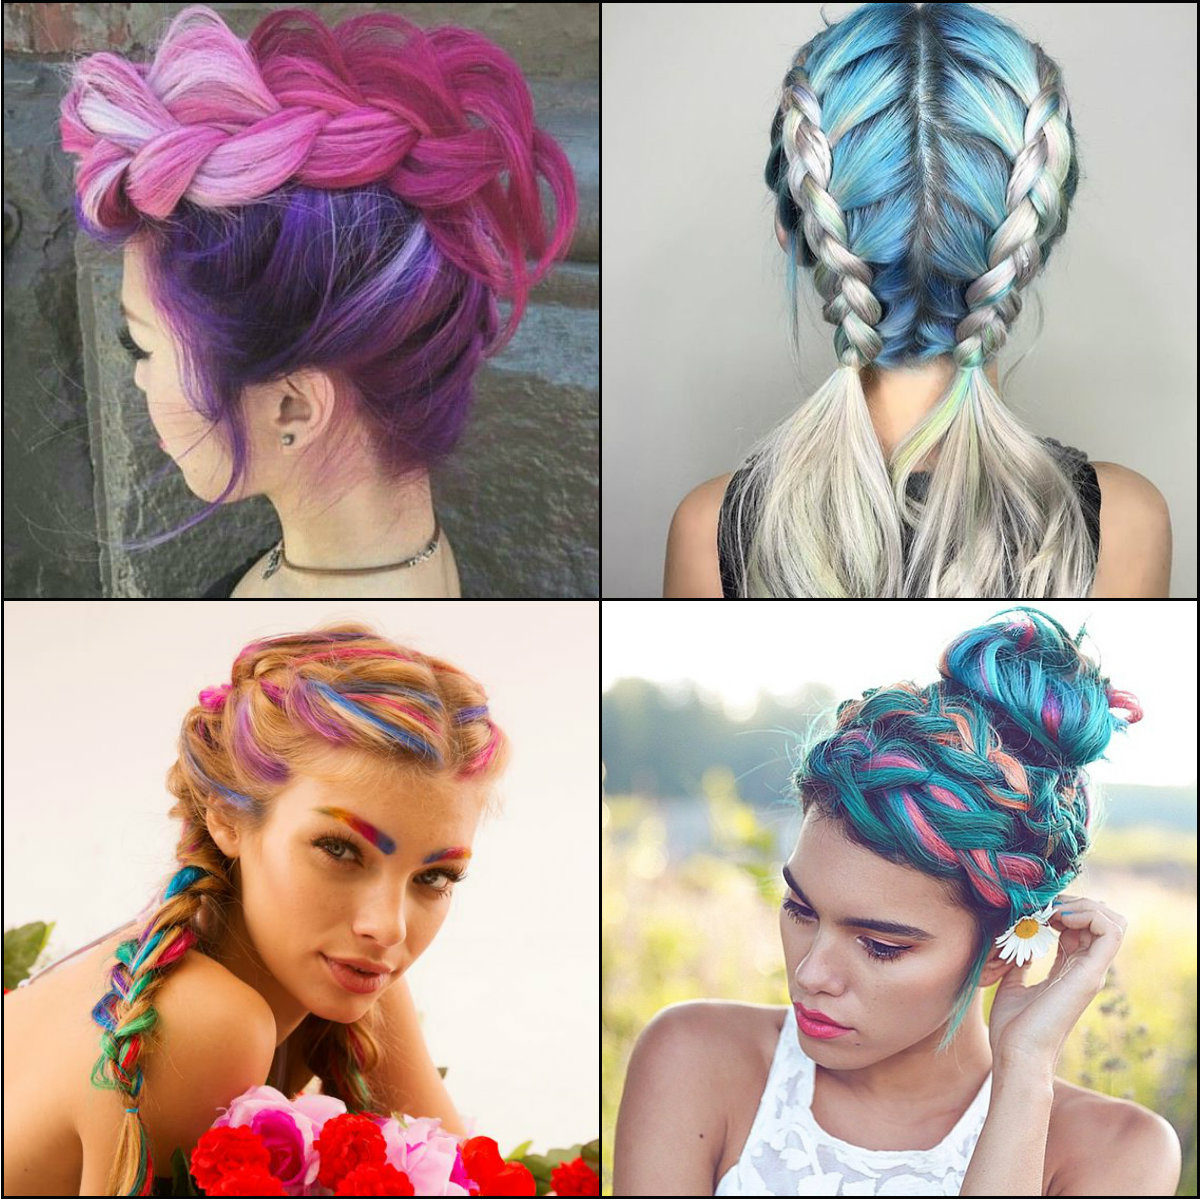 Hairstyles 2017, Hair Colors And Haircuts Within Famous Pink And Purple Mohawk Hairstyles (View 5 of 20)